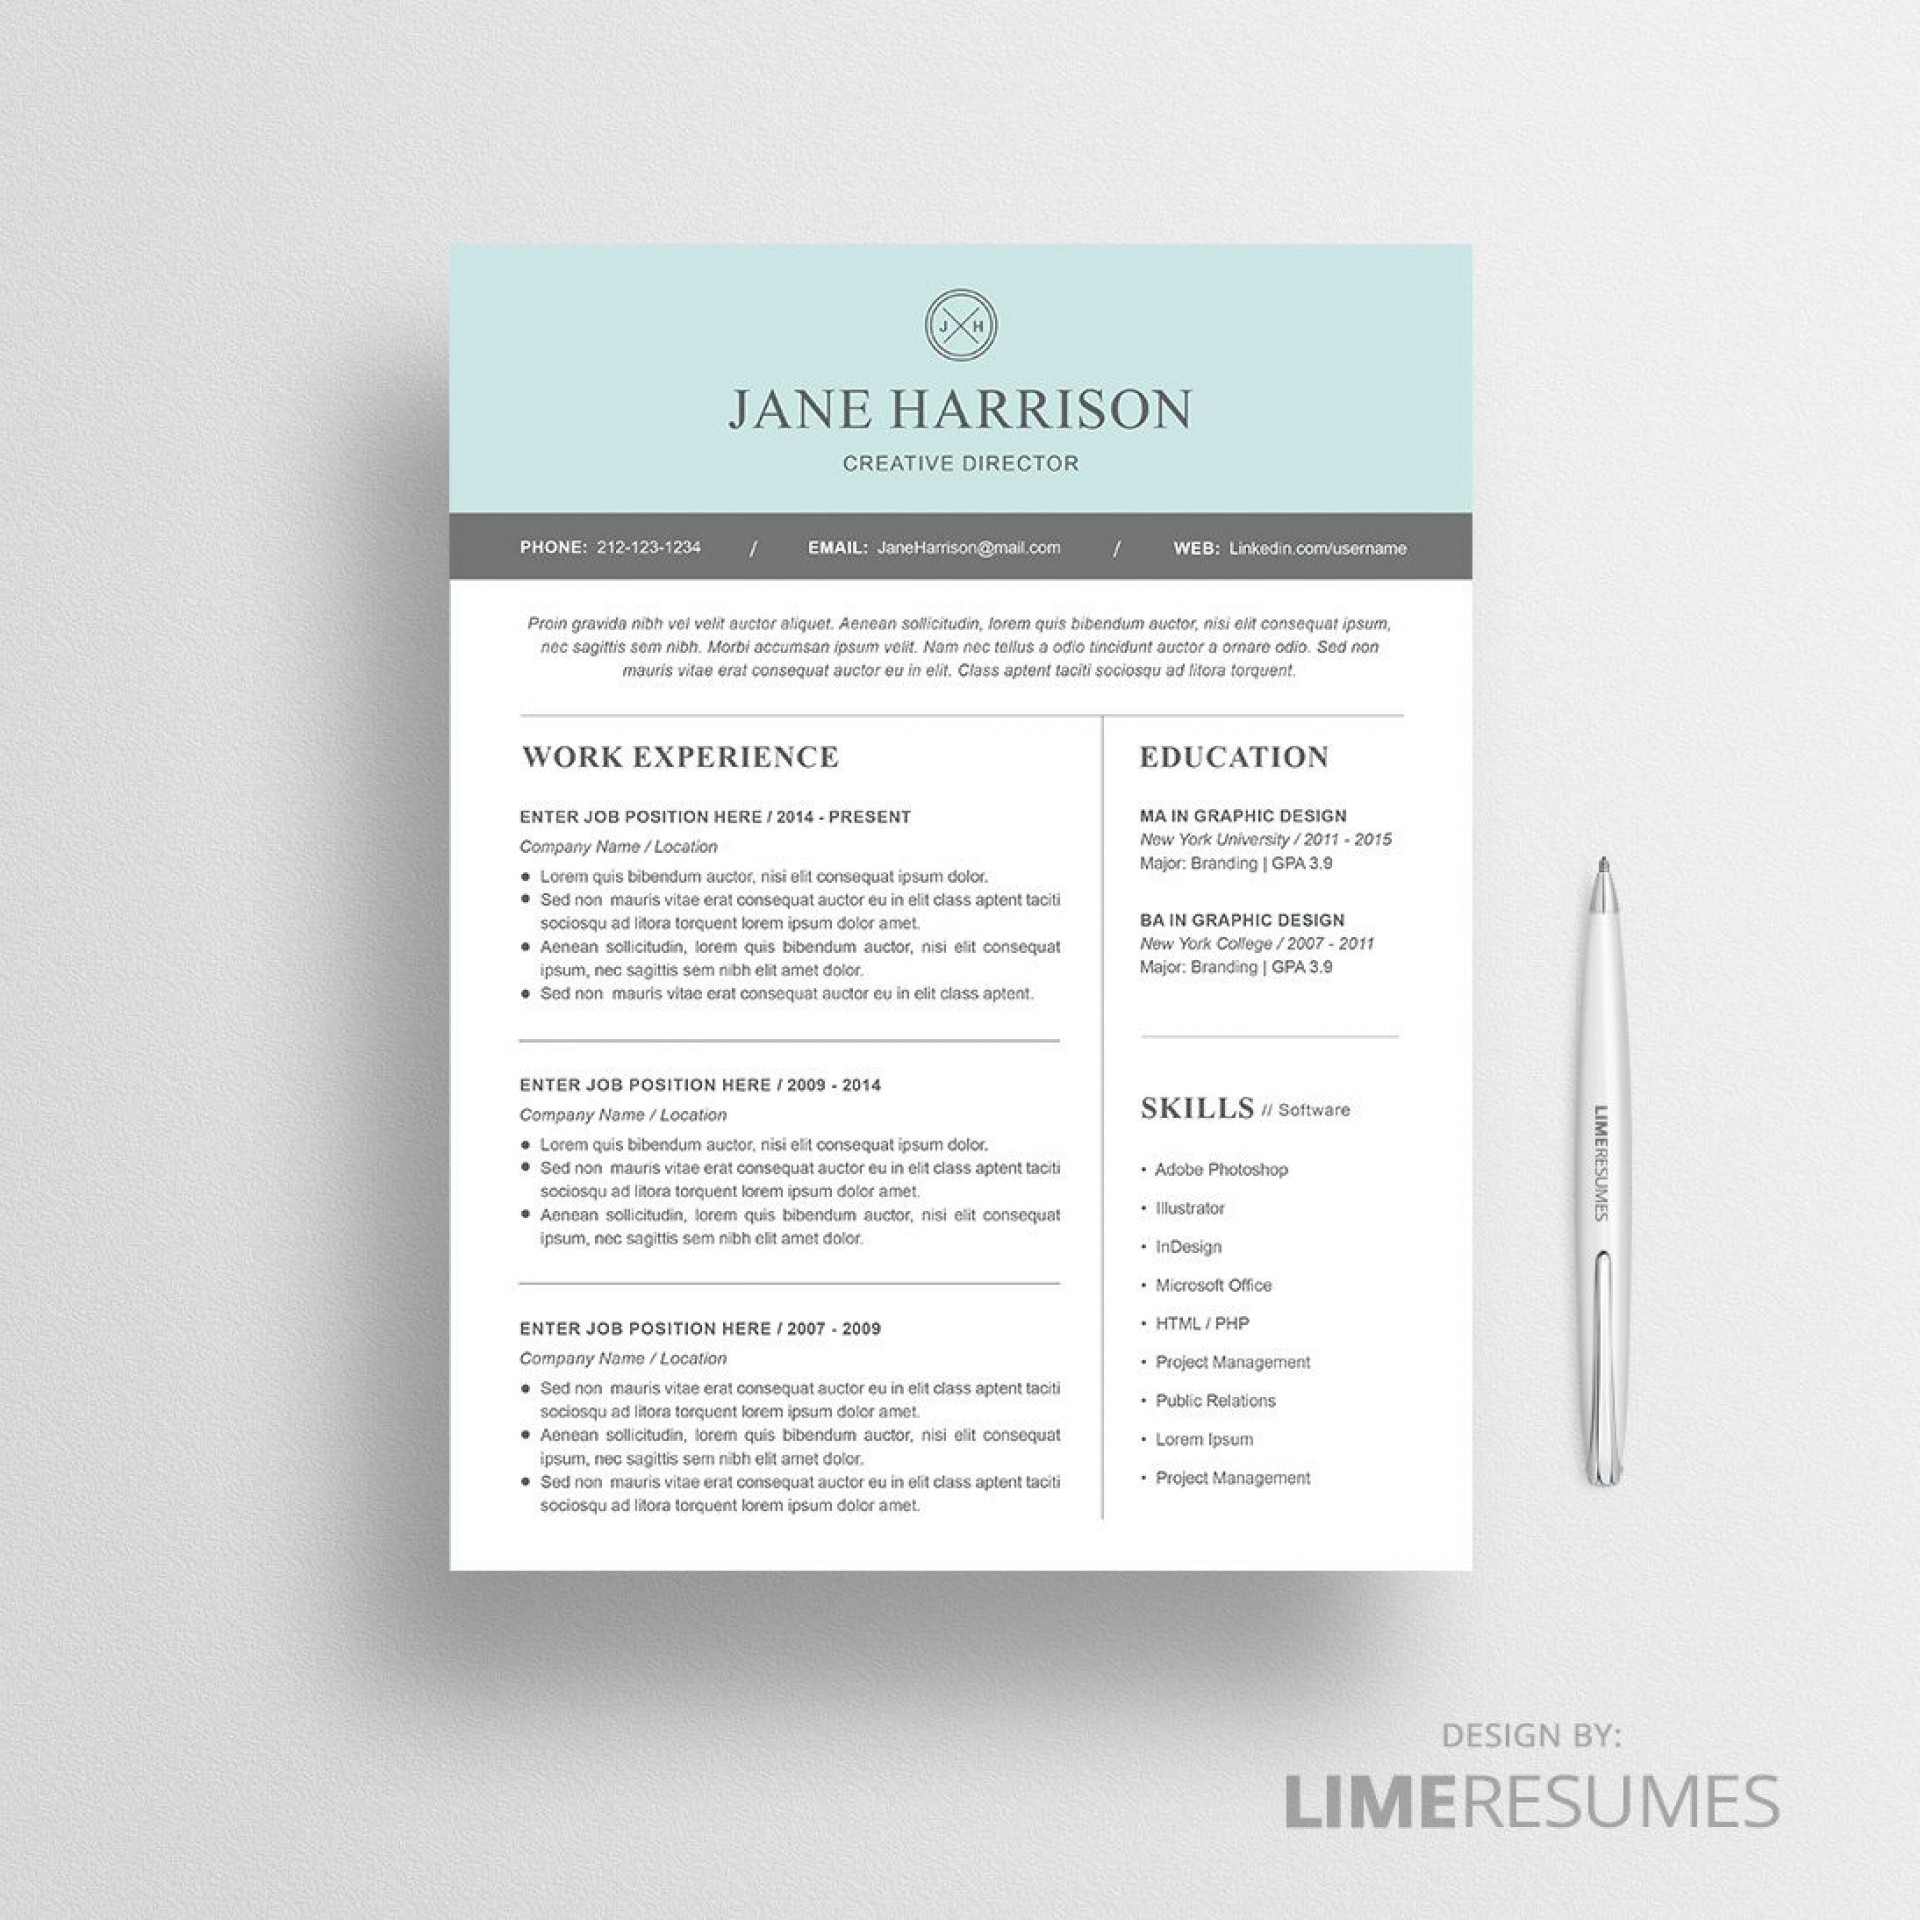 006 Unusual Resume Template On Word Highest Quality  Free Download Australia Microsoft Office 2007 Philippine1920